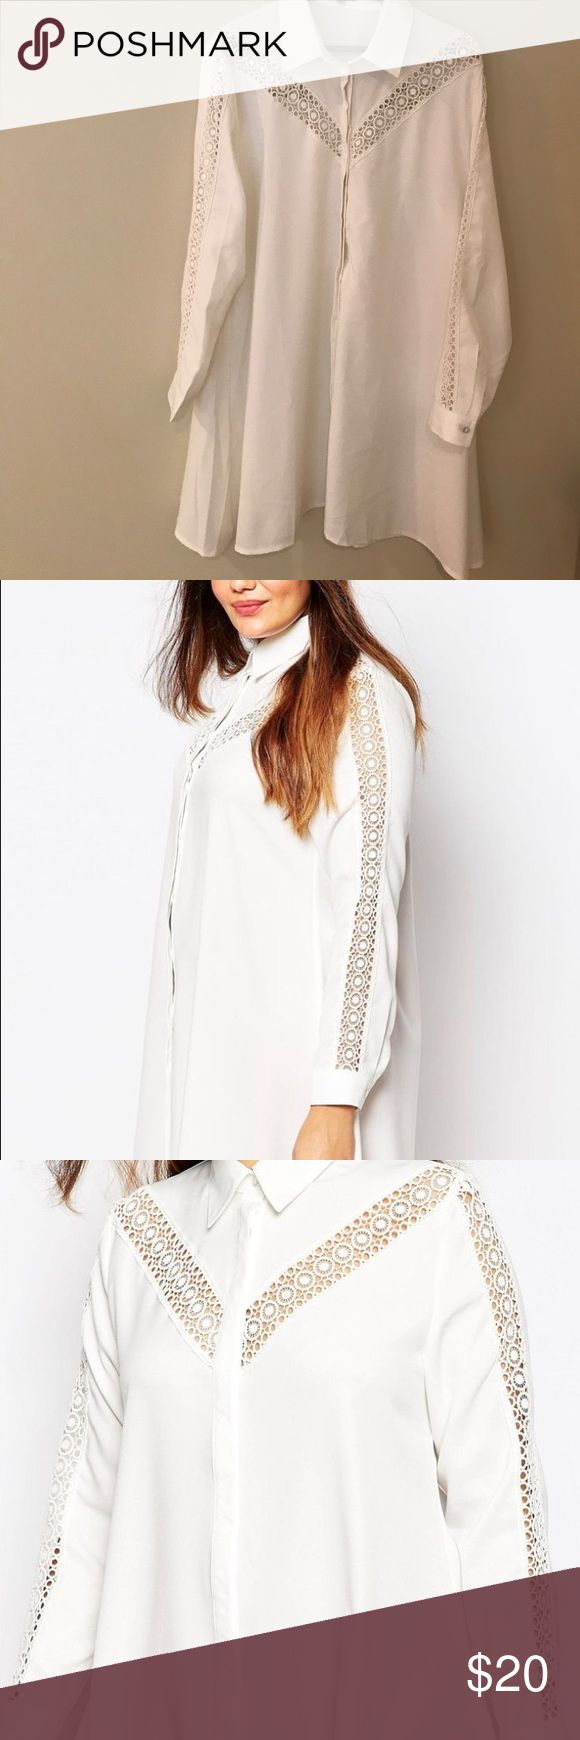 PLUS SIZE: ASOS Shirt Dress with Lace Insets Plus Size long sleeve shirt dress. Swing body, is flattering on all body shapes. Lace inserts on sleeves and front yoke. Full hidden button front placket. This has never been worn, but does not include tags. ASOS Curve Dresses Long Sleeve